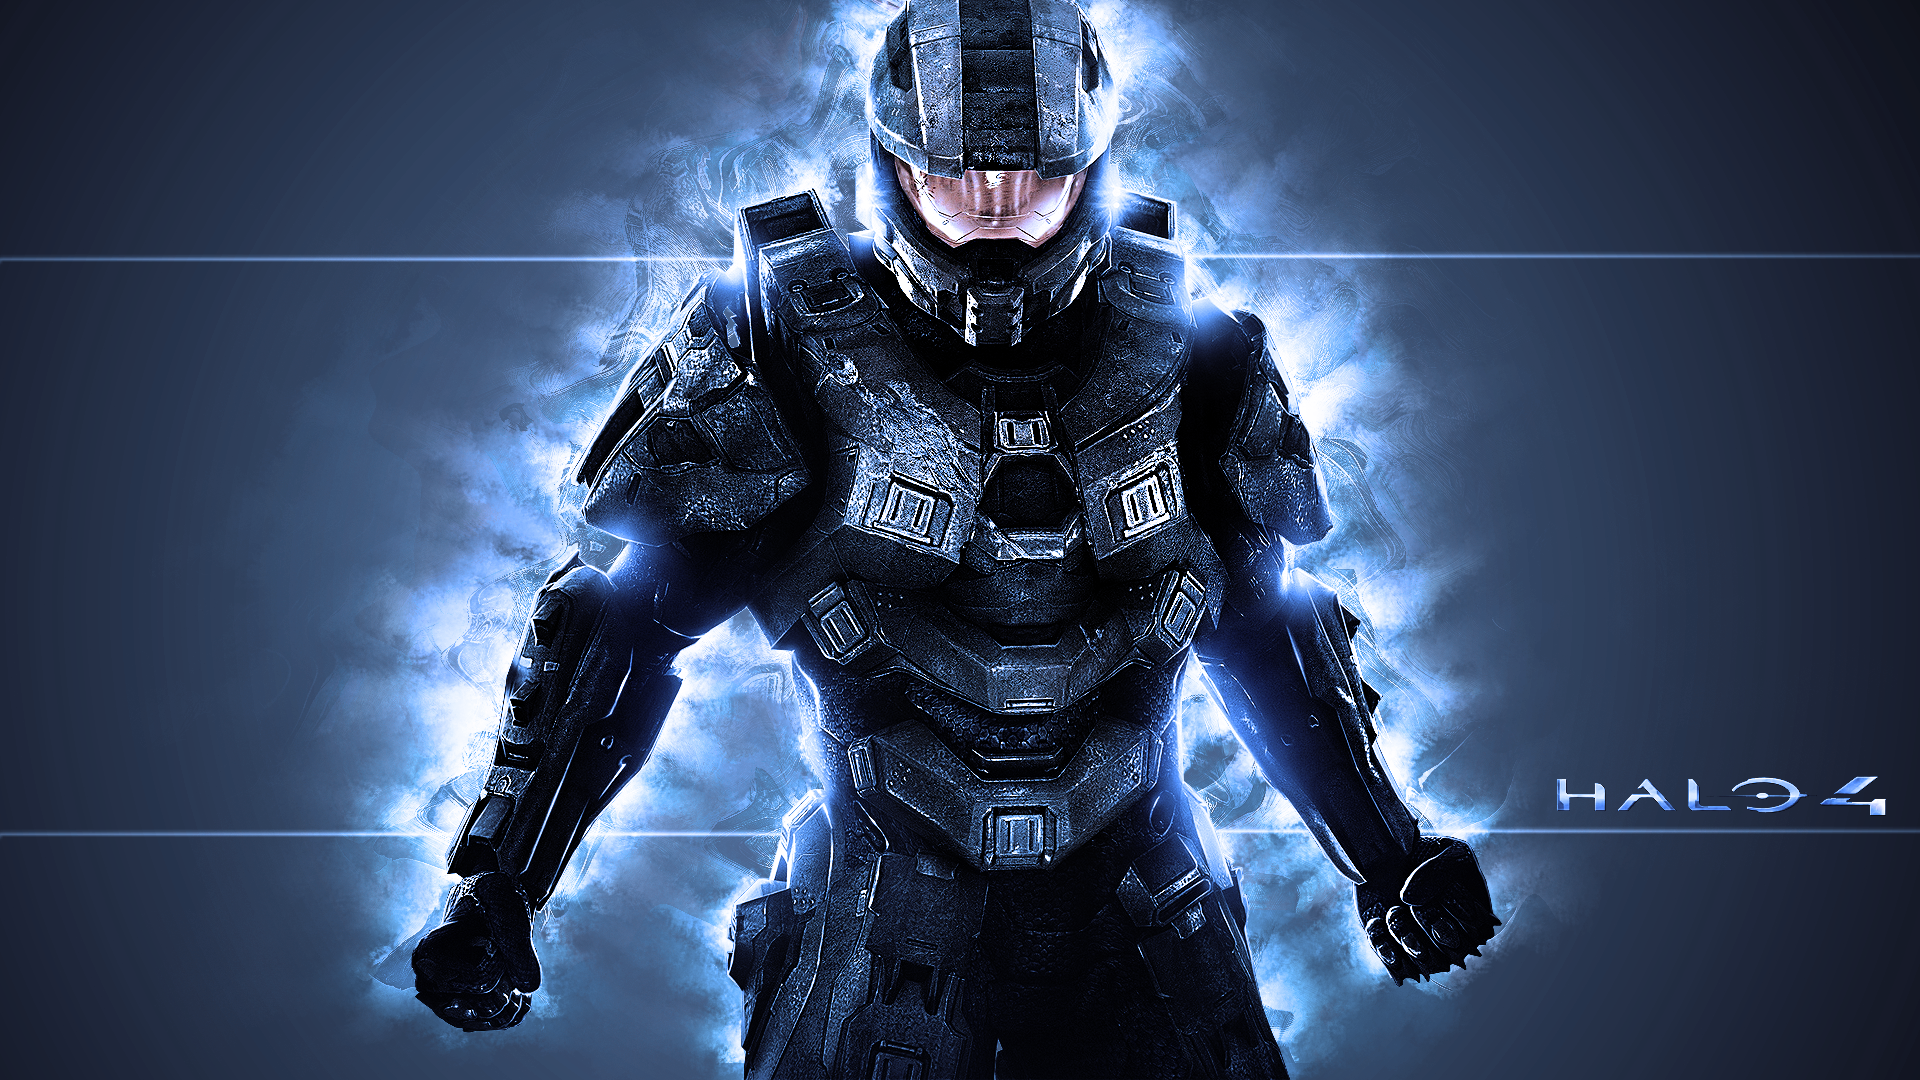 Halo 4 Master Chief Exclusive HD Wallpapers 2985 1920x1080